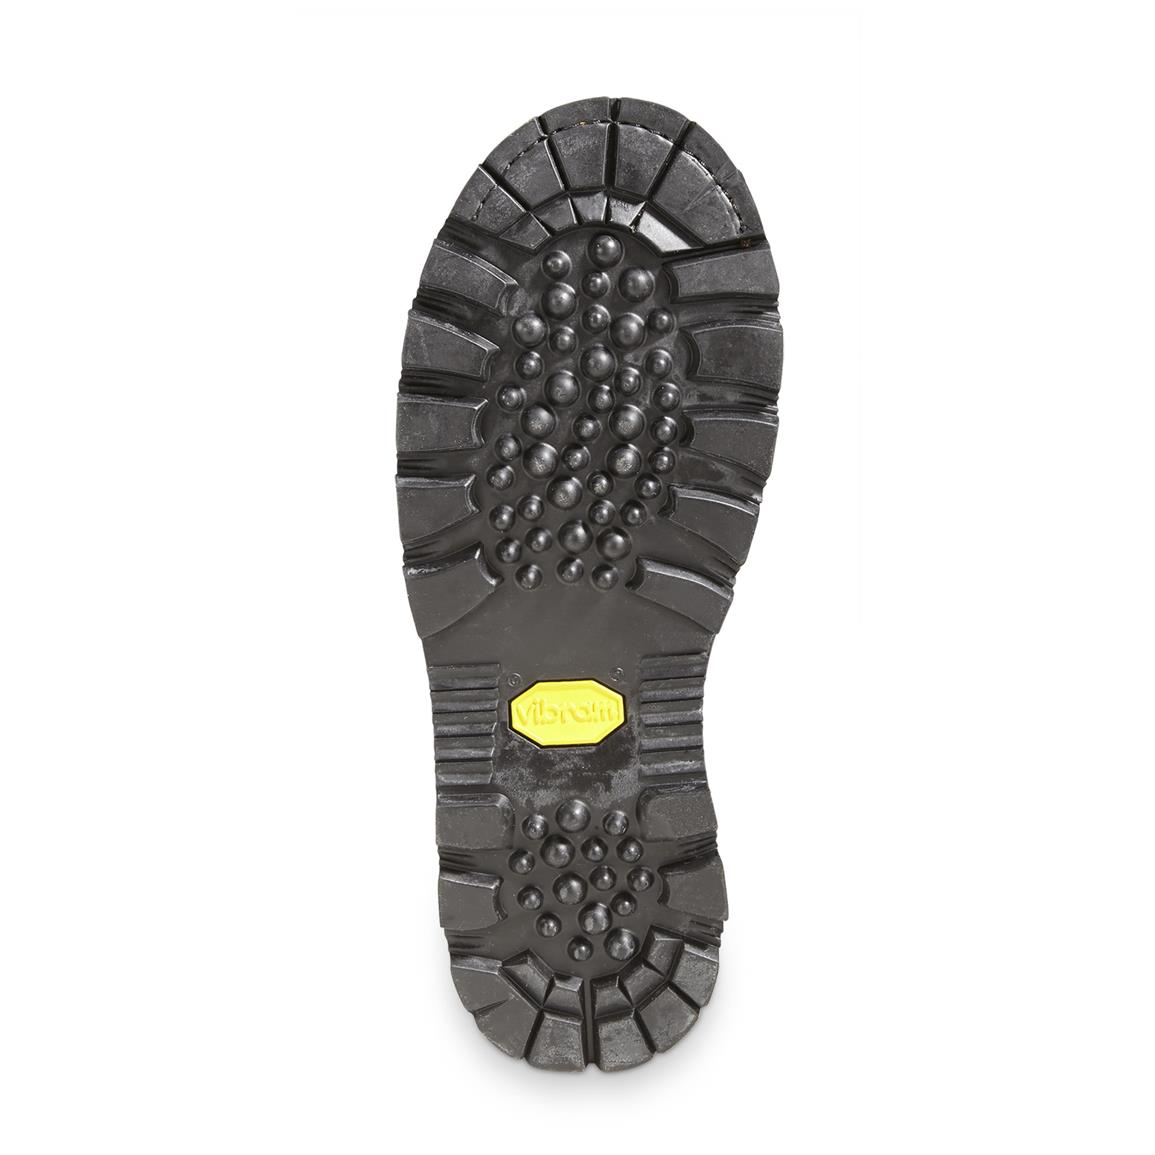 Vibram Little Horn outsole for top traction